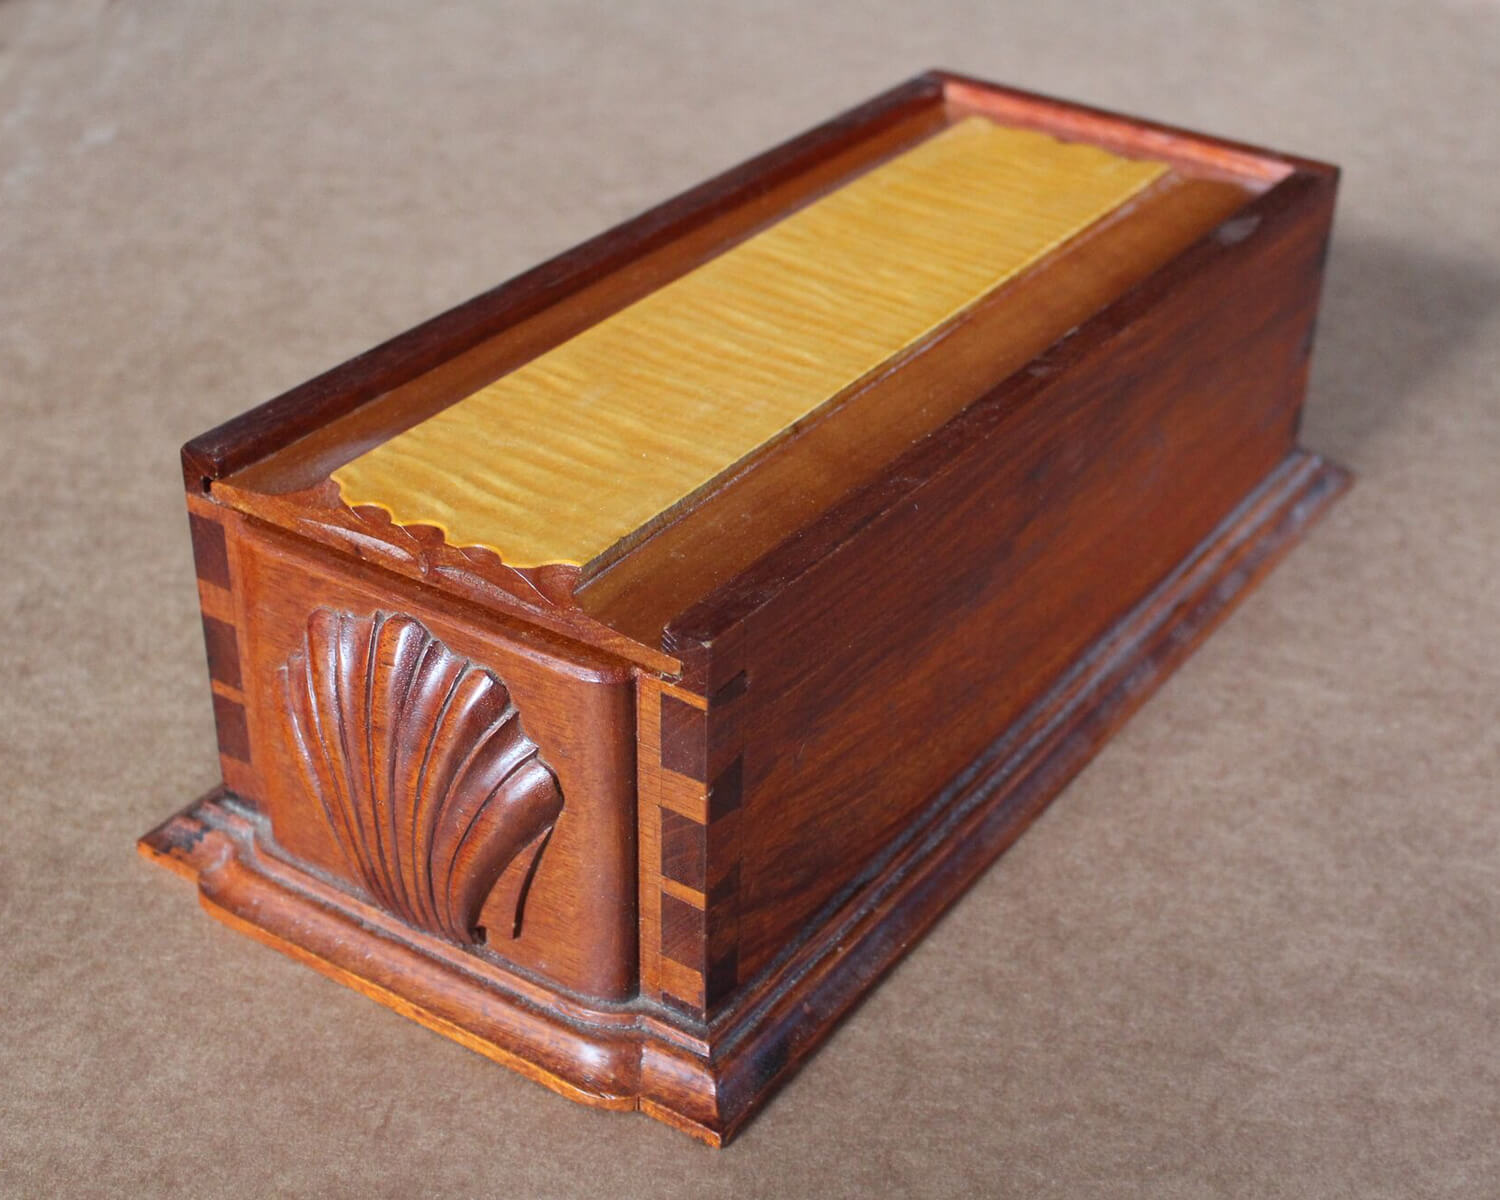 Sliding-lid Box with Shell Lid